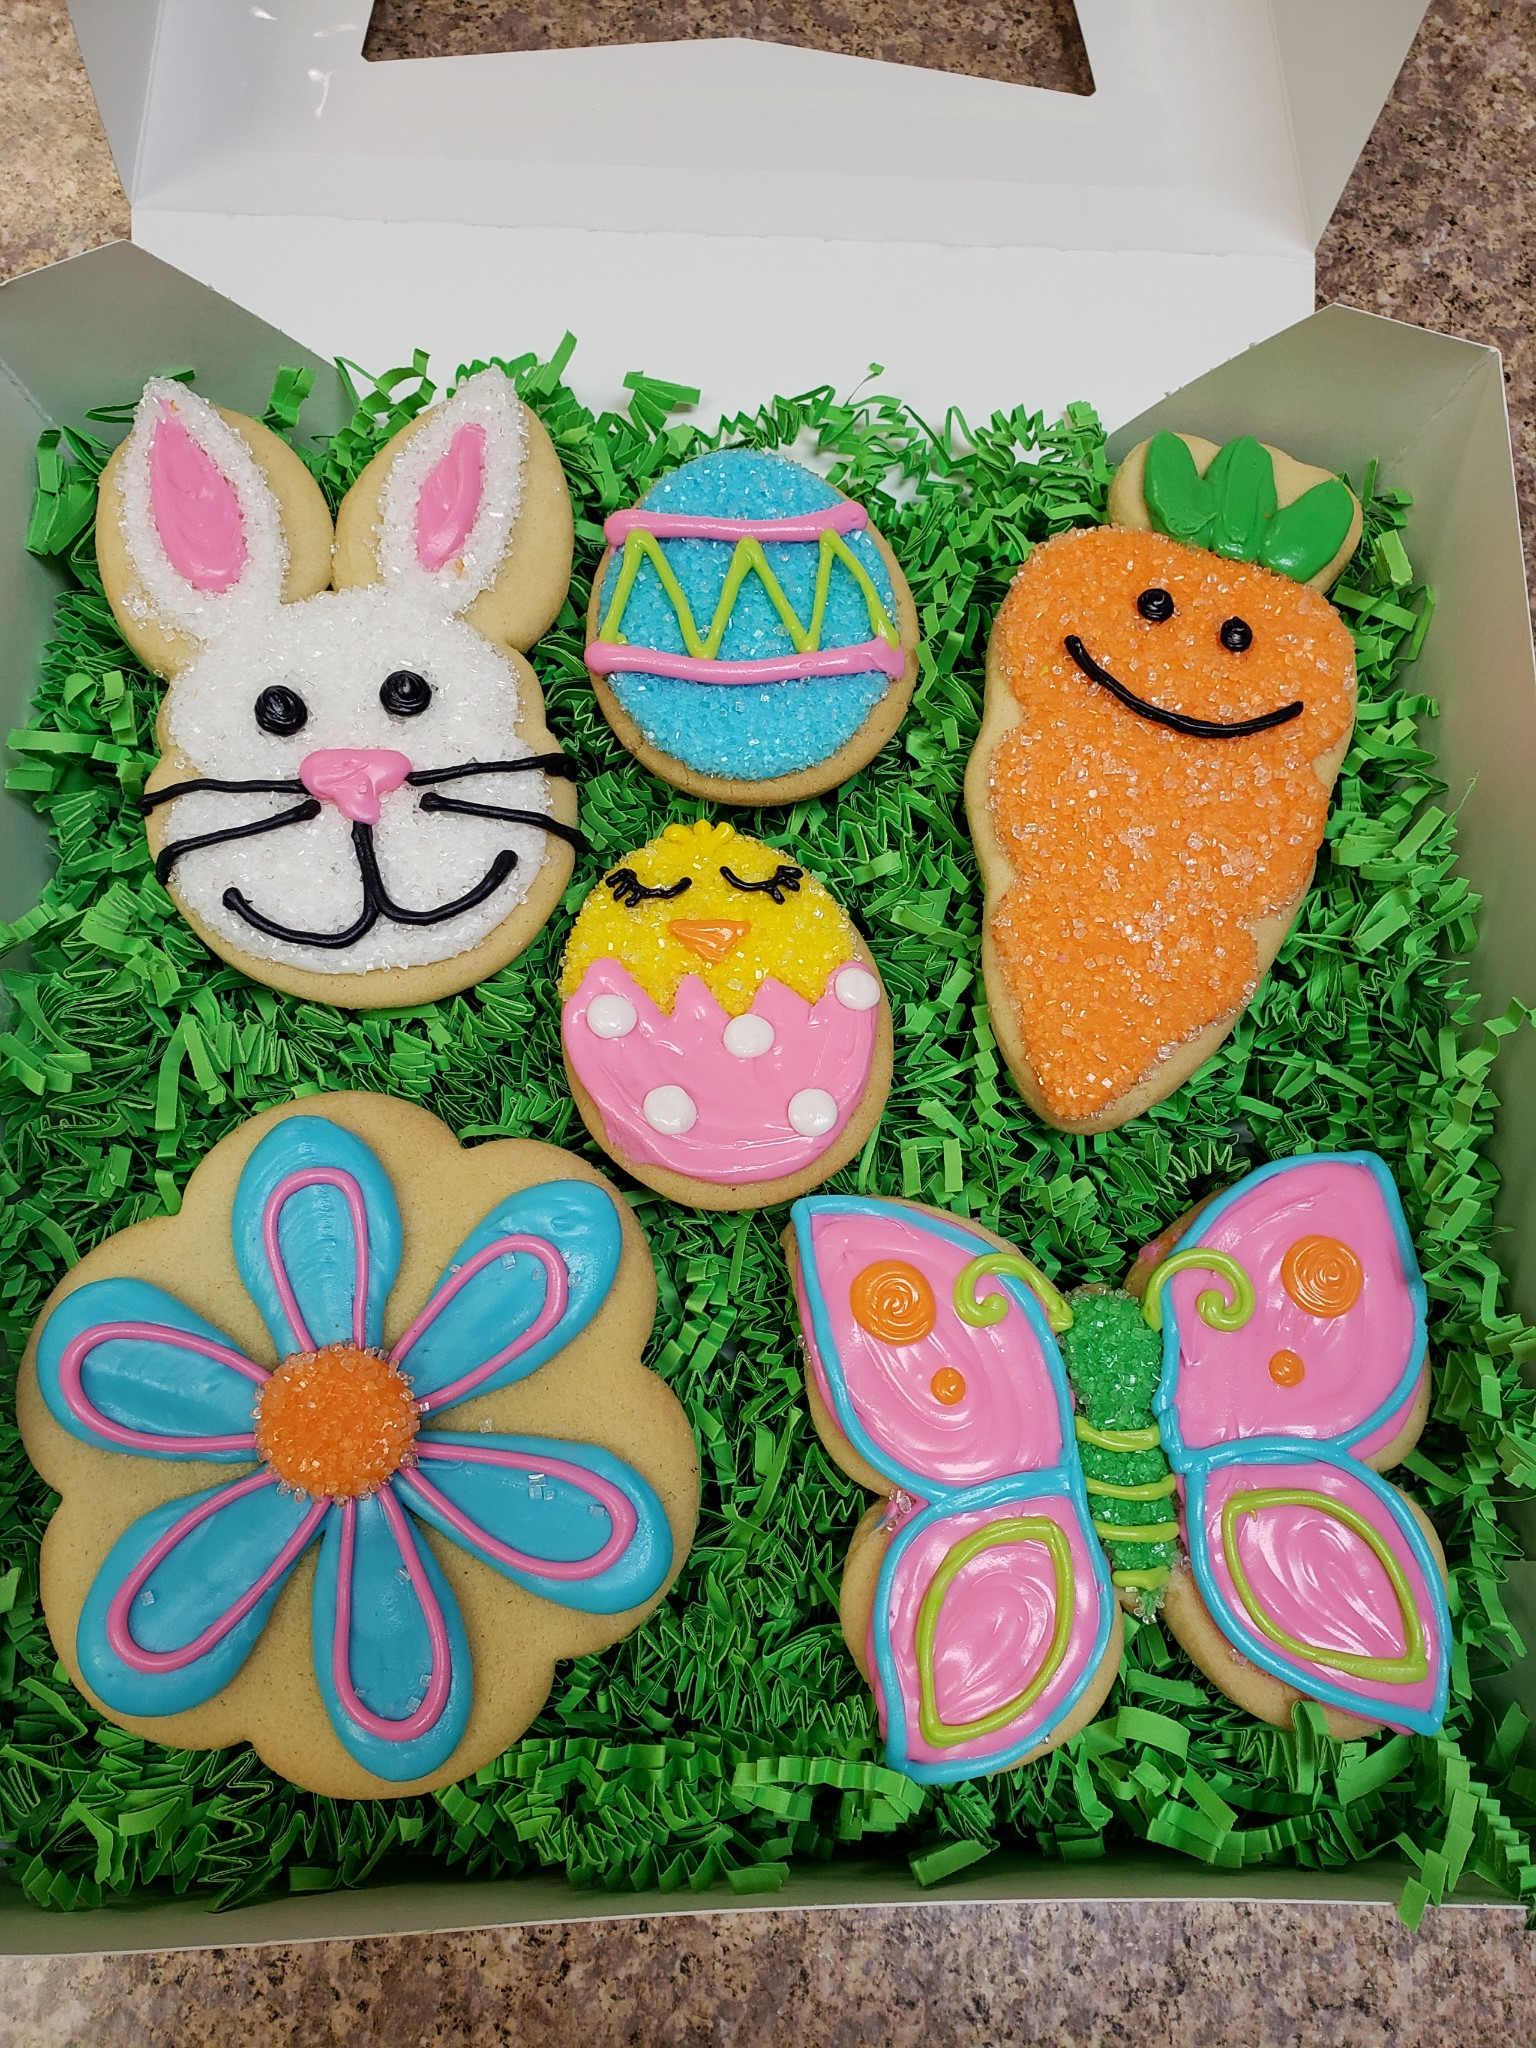 Easter Cutouts in a Gift Box